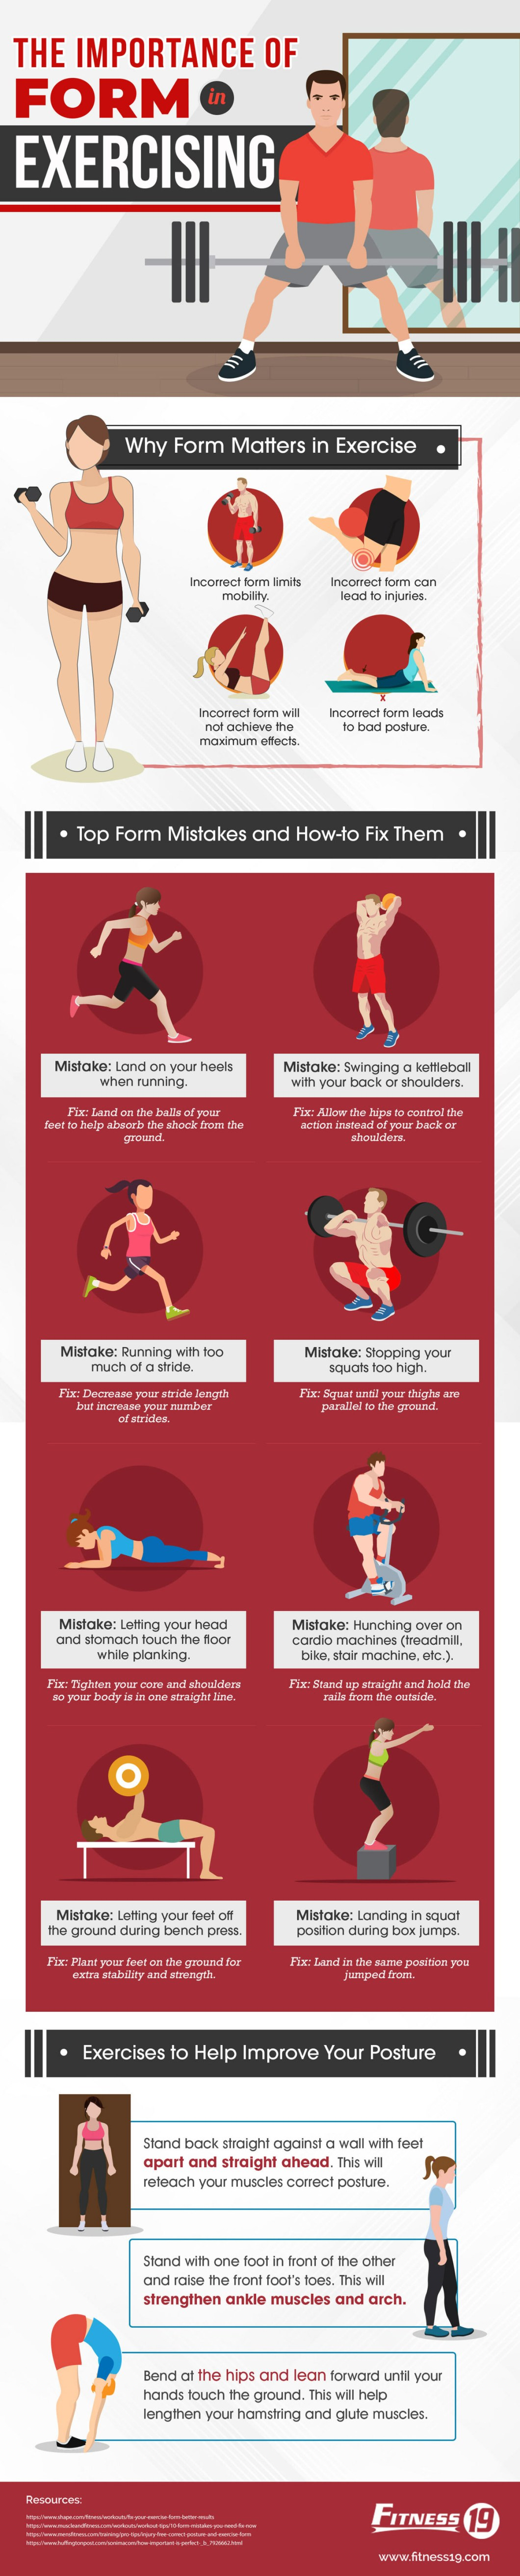 Why Correct Form is Key to Effective Exercising - Infographic